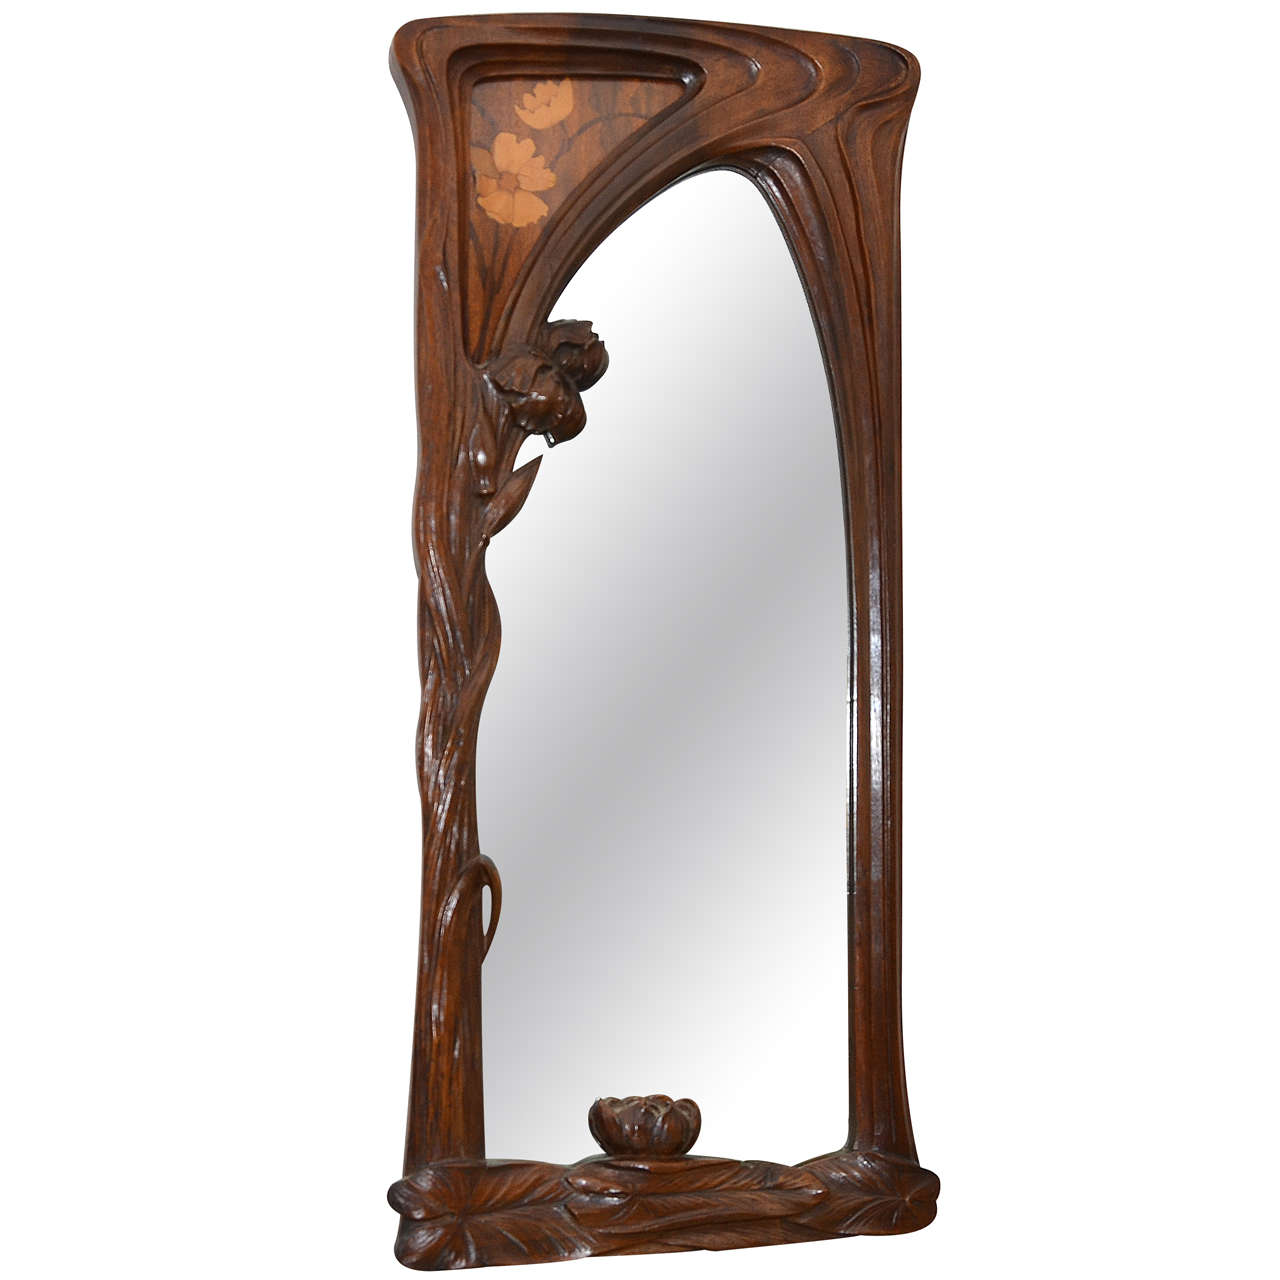 Early 20th Century Art Nouveau Mirror Attributed to J ...